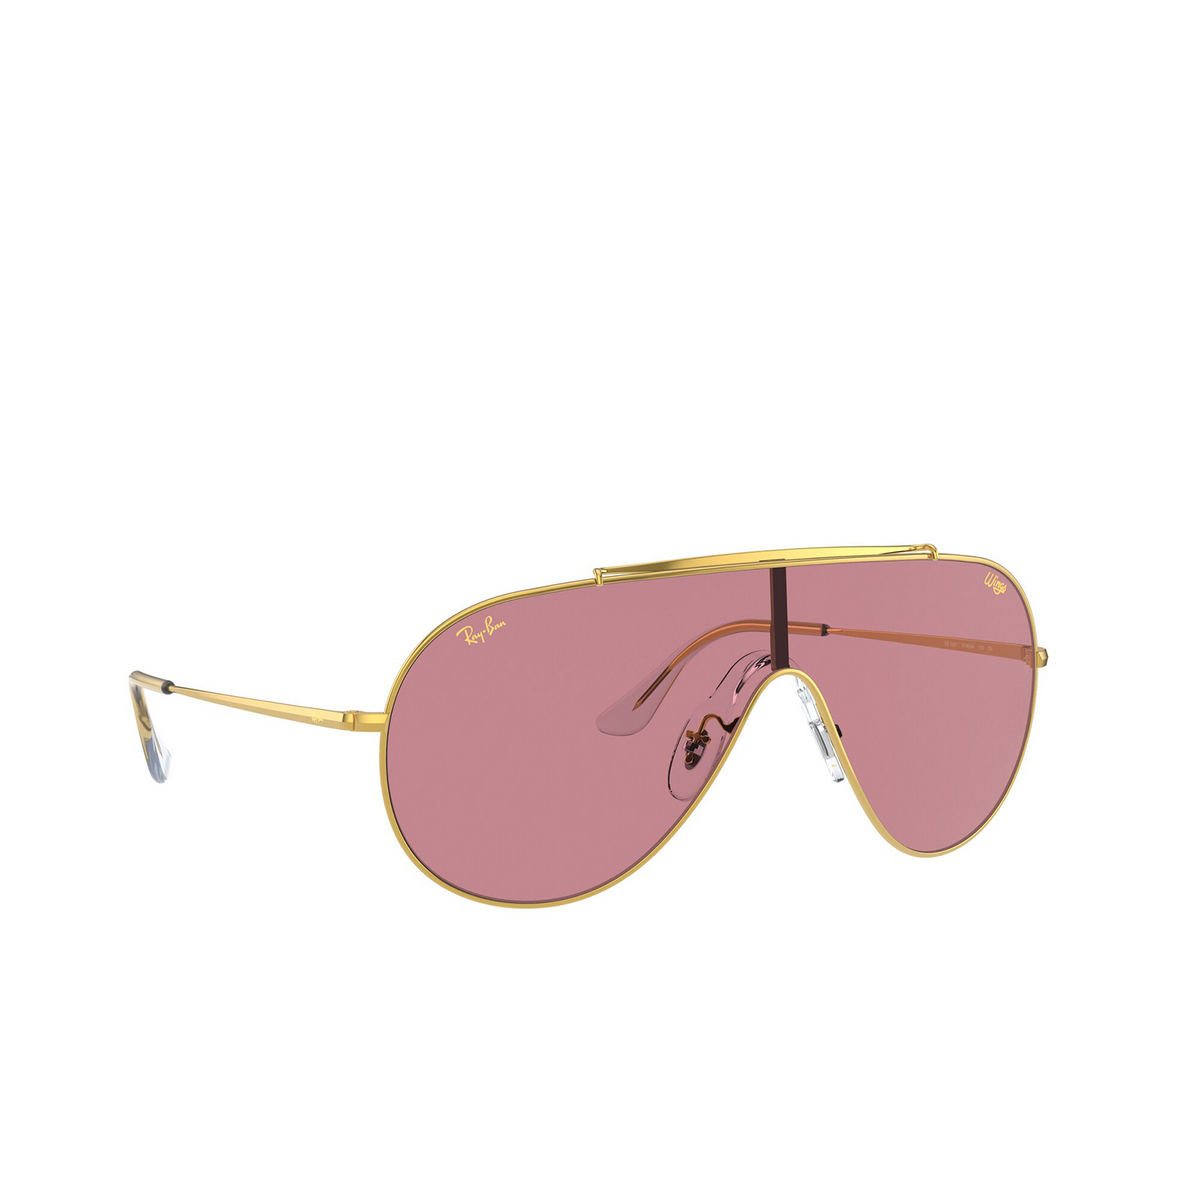 Ray-Ban® Aviator Sunglasses: Wings RB3597 color Legend Gold 919684 - three-quarters view.